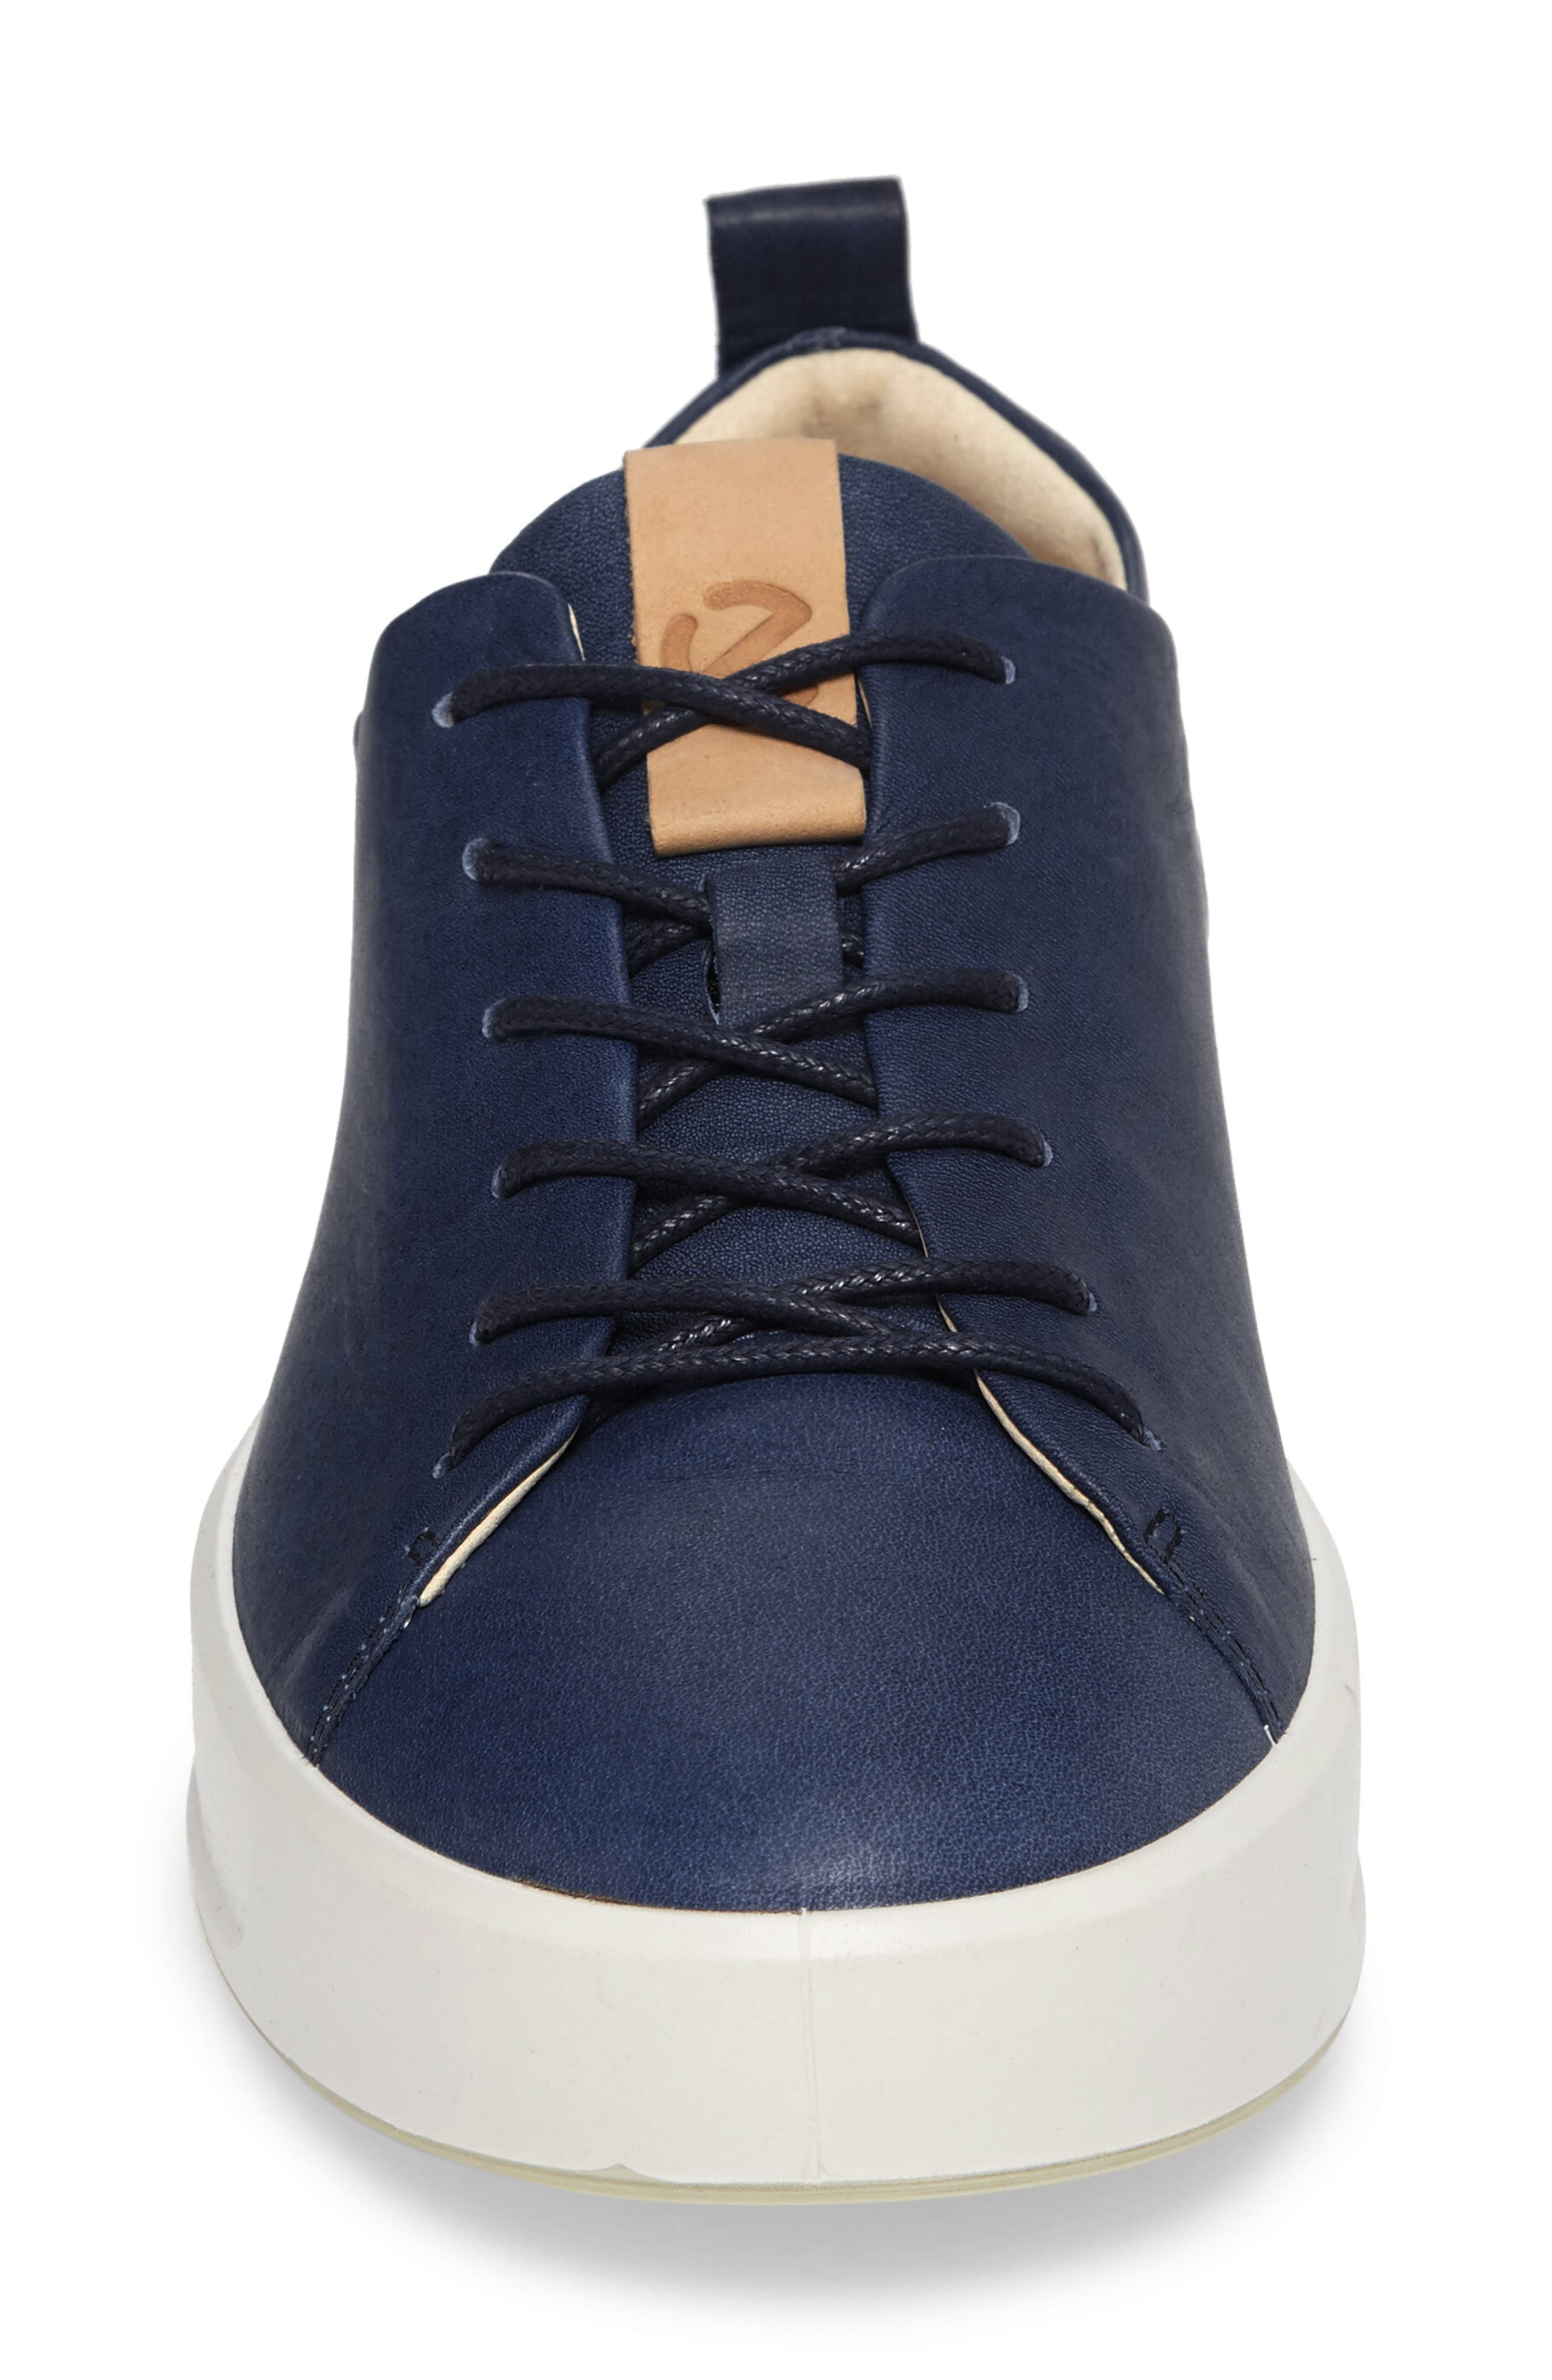 Soft 8 Sneaker,                             Alternate thumbnail 6, color,                             Indigo 7 Leather